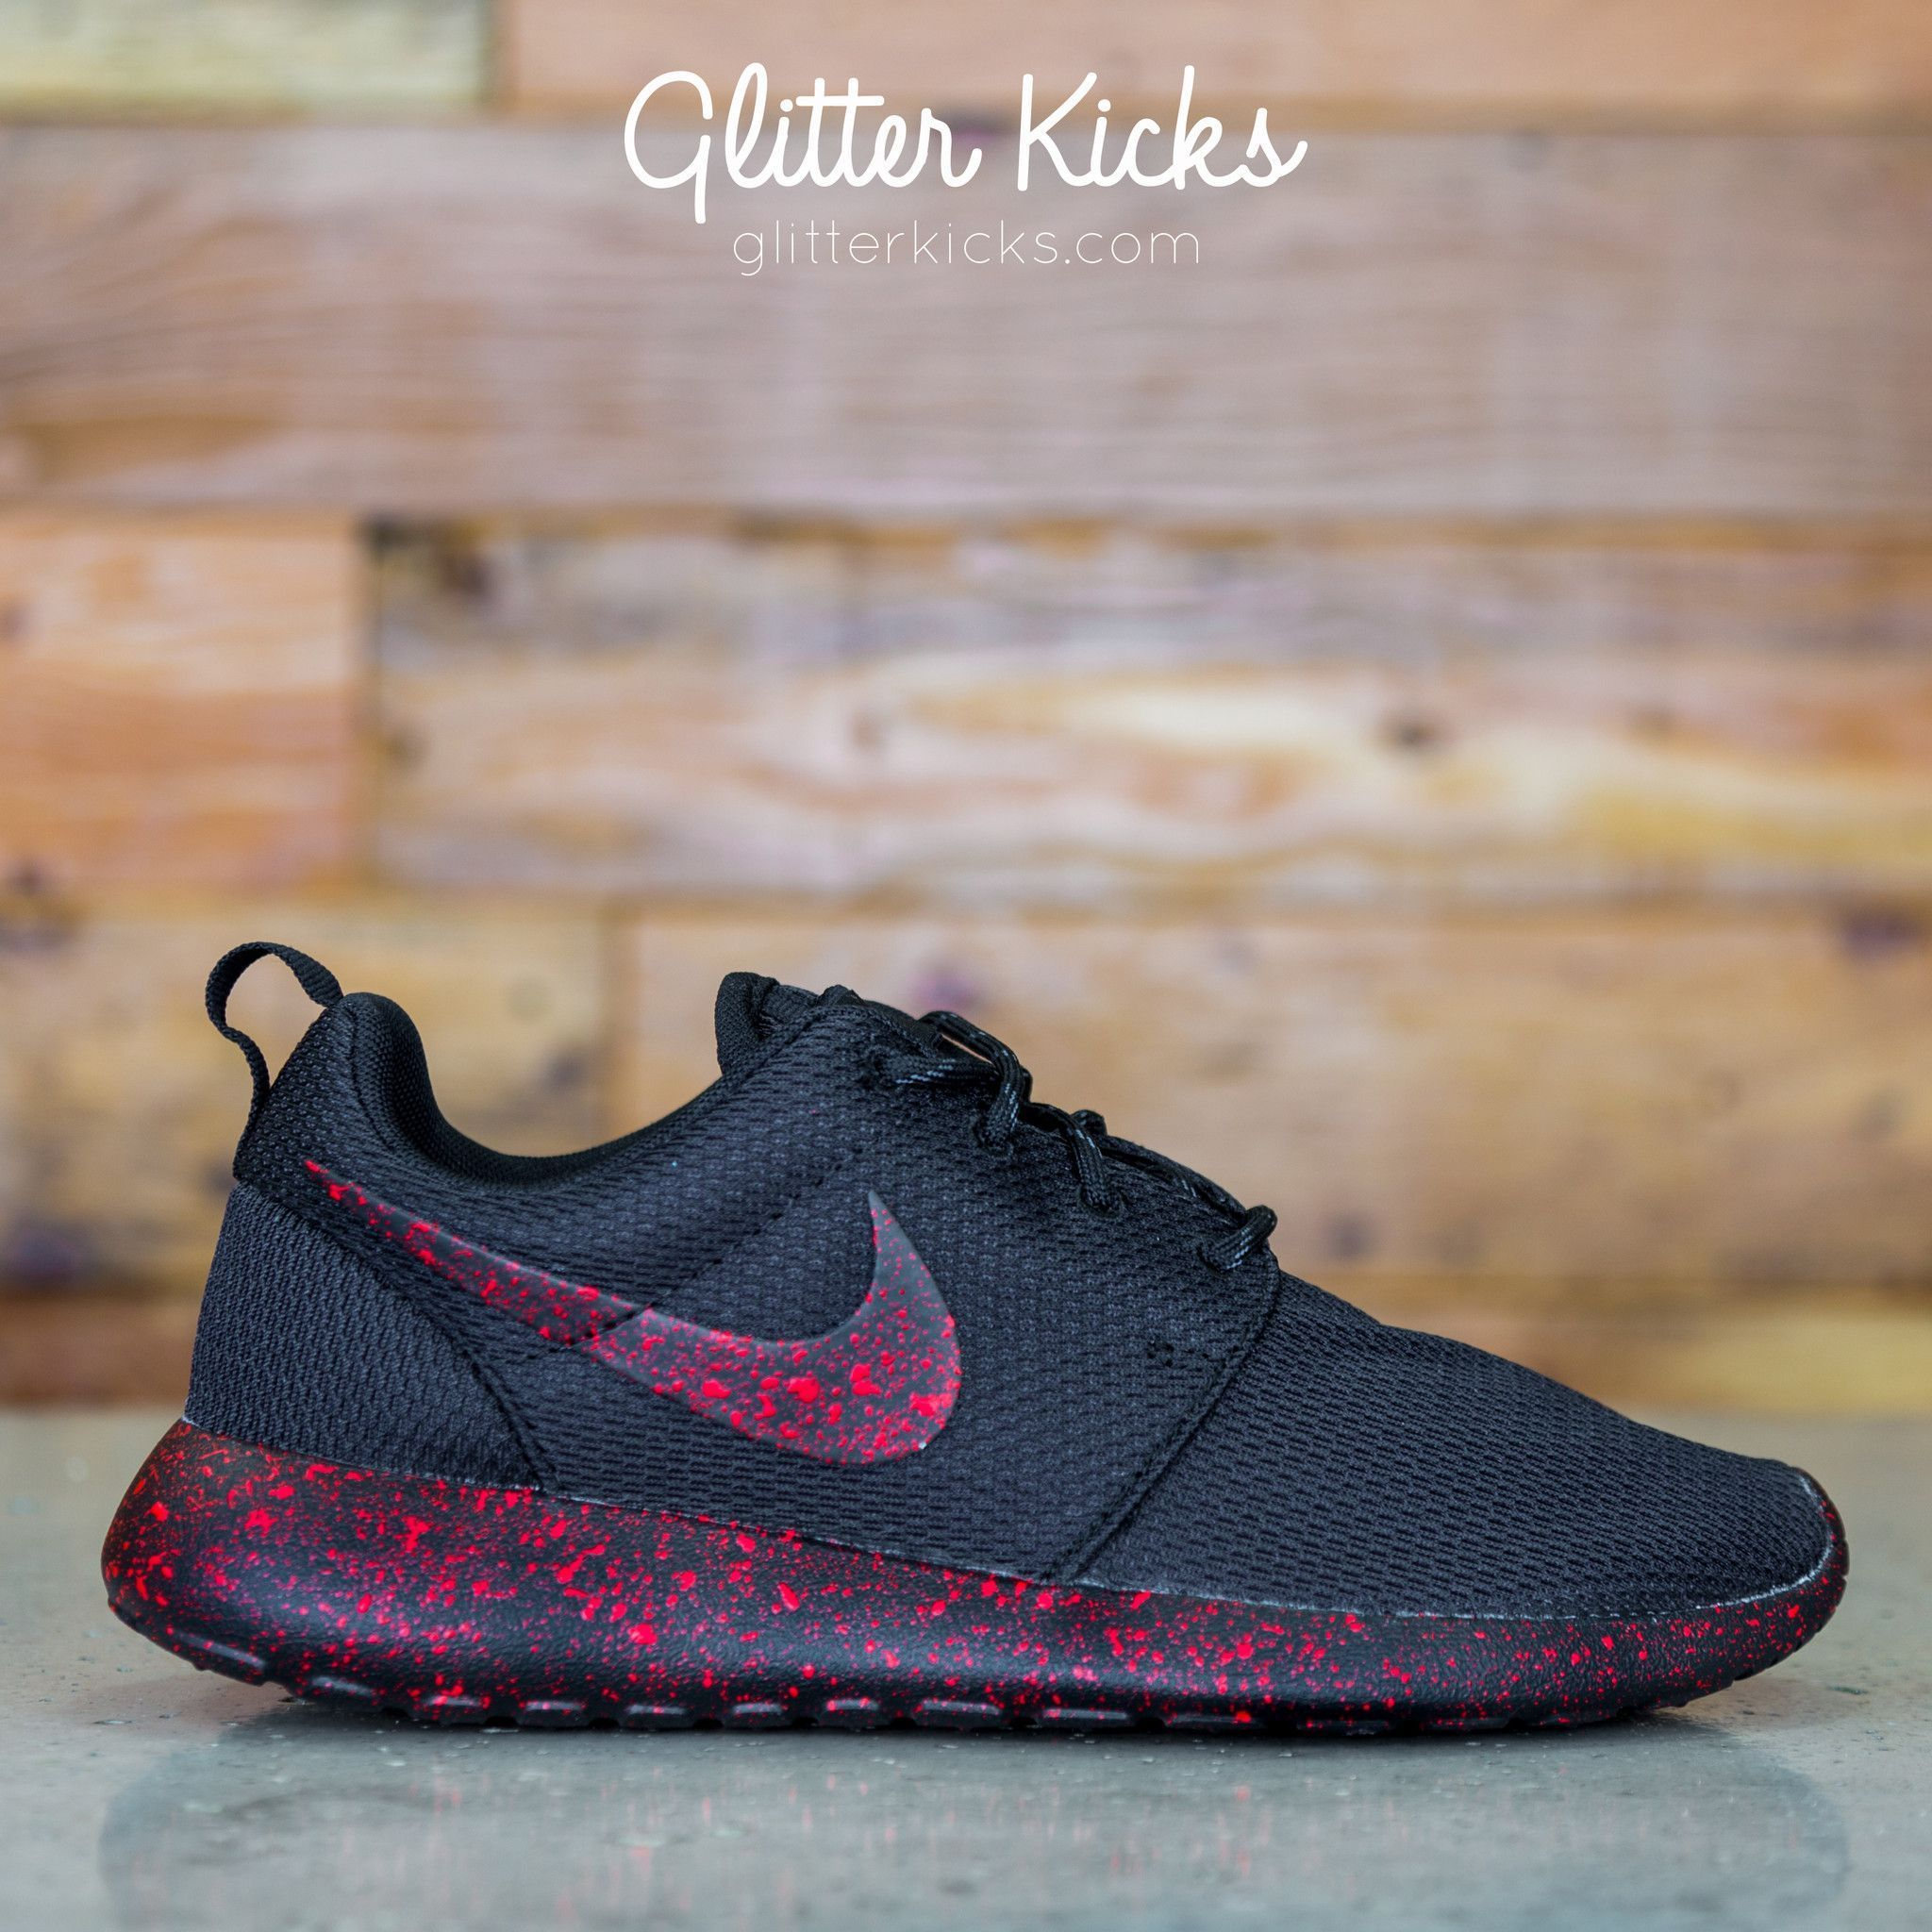 0c047a193130 Nike Roshe One Customized by Glitter Kicks - Triple Black   Red Paint  Speckle